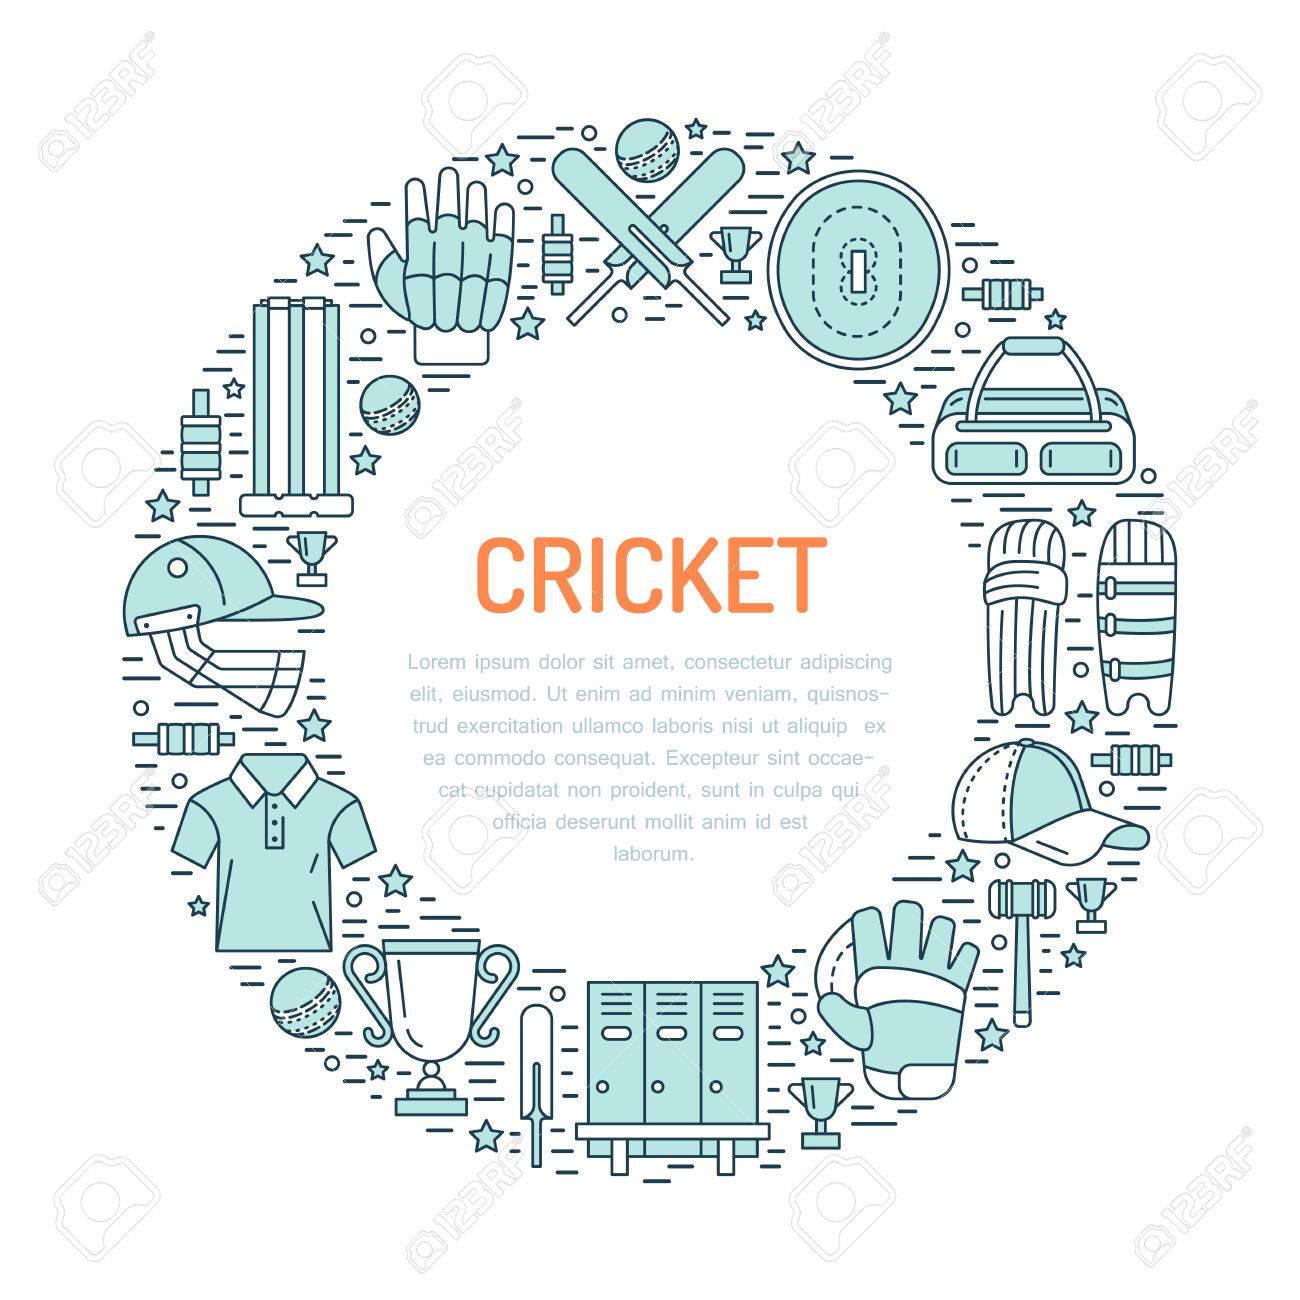 hight resolution of cricket banner with line icons of ball bat field wicket helmet